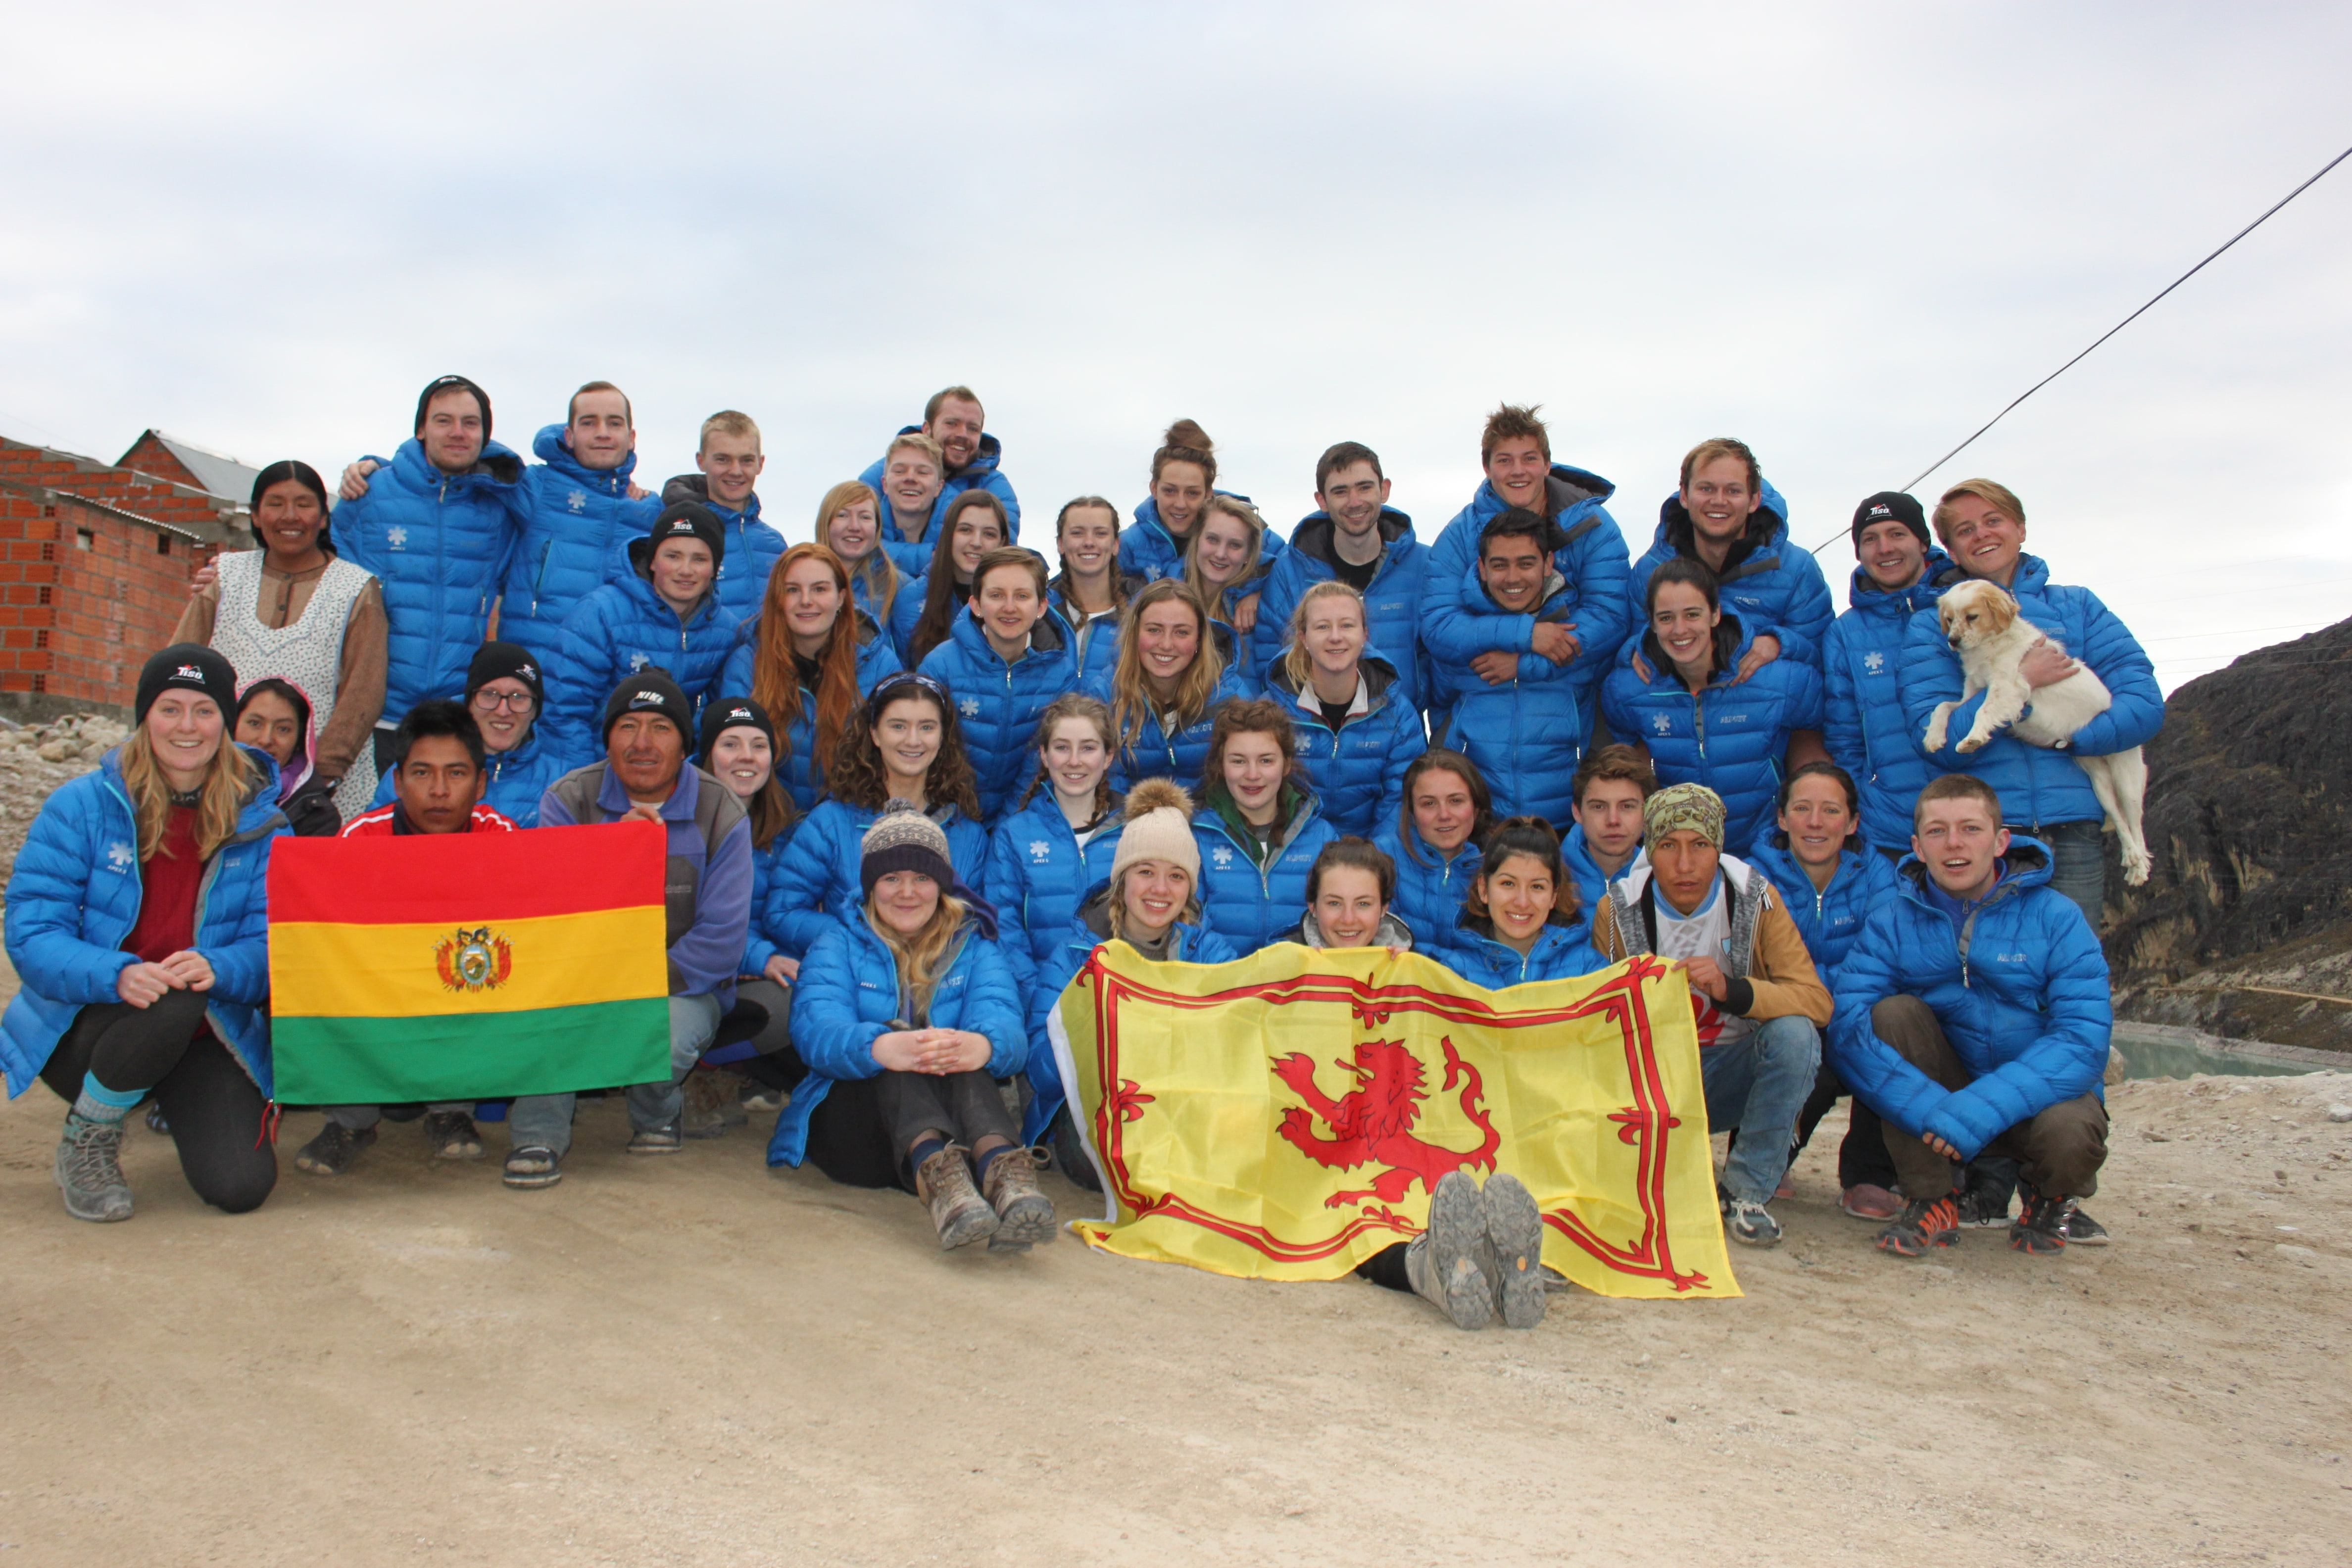 The APEX 5 expedition team in Huayna Potosi, Bolivia